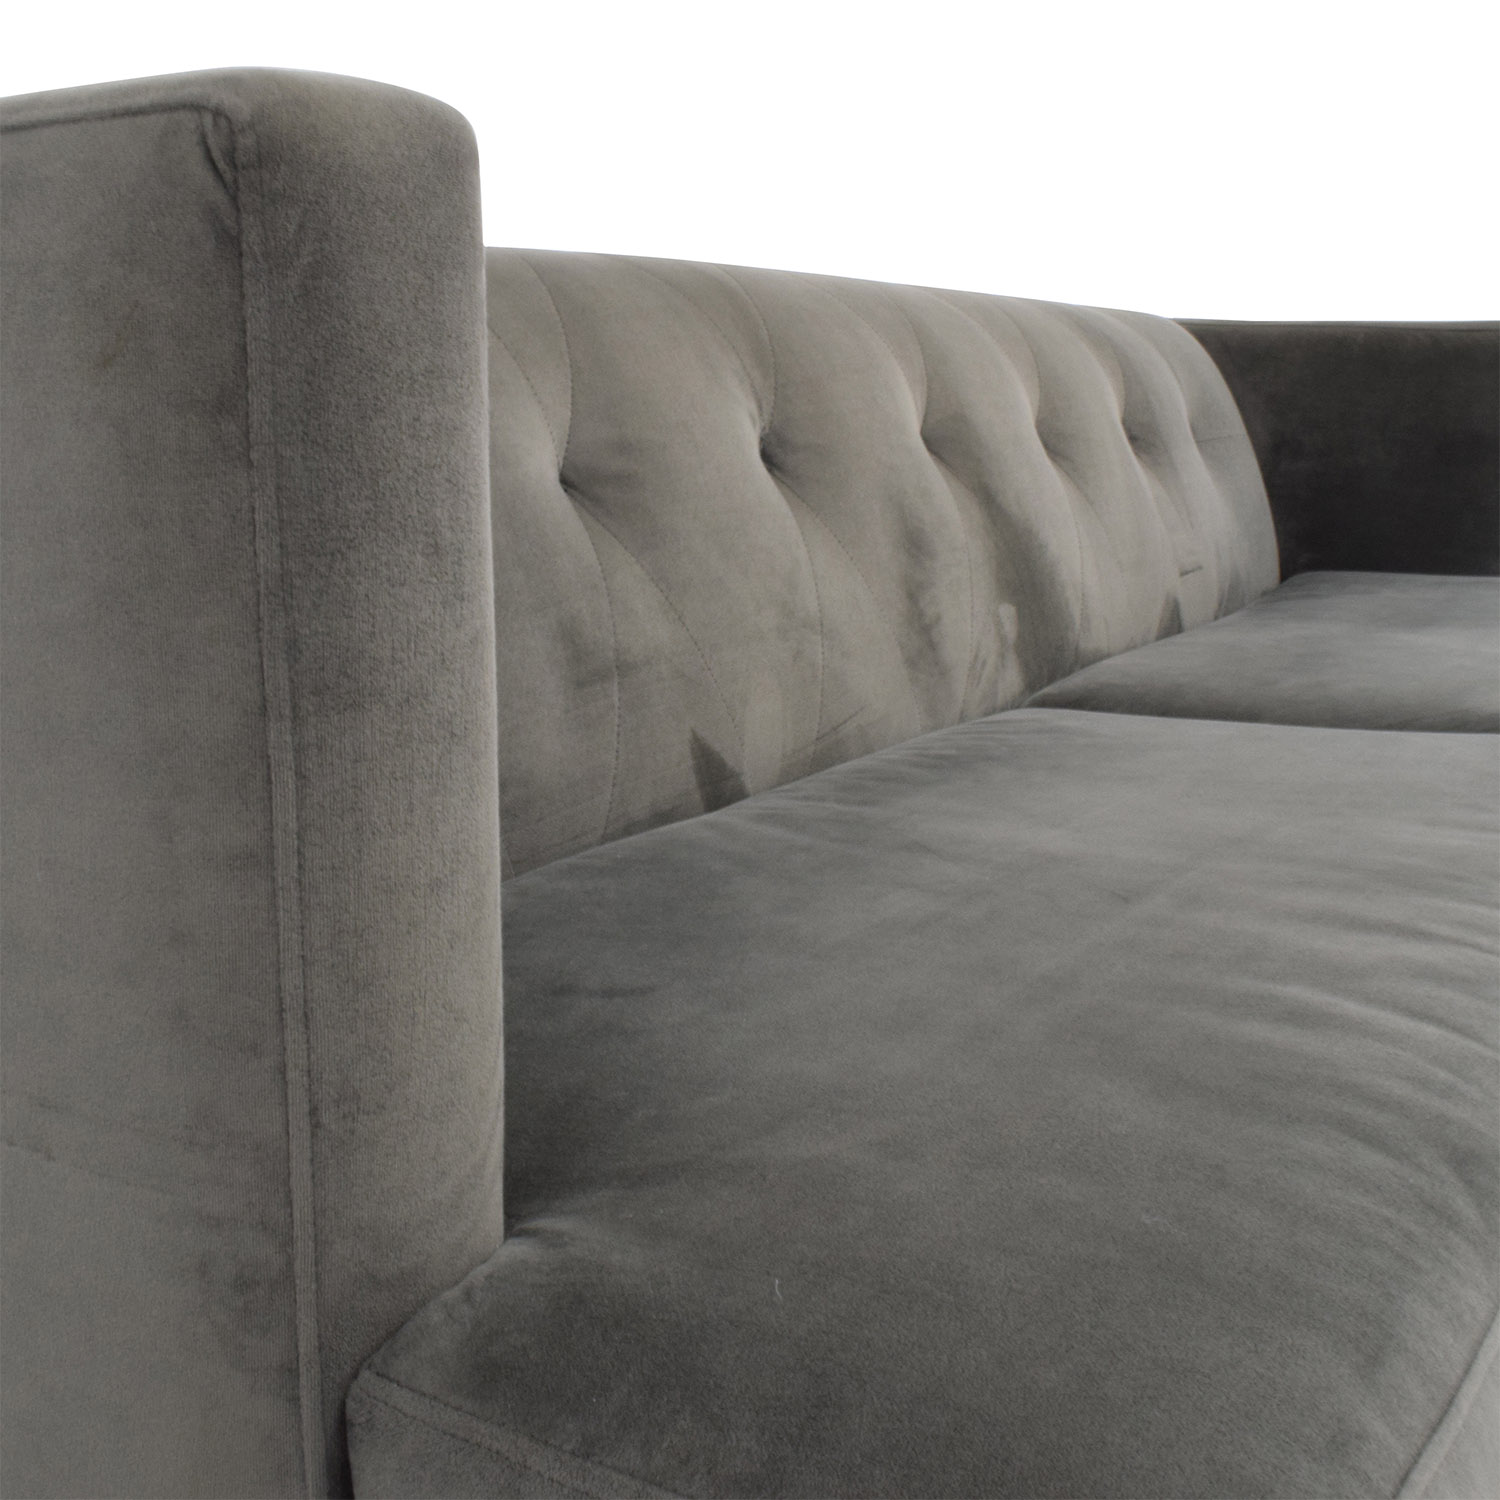 CB2 CB2 Avec Grey Sofa with Brushed Stainless Steel Legs coupon